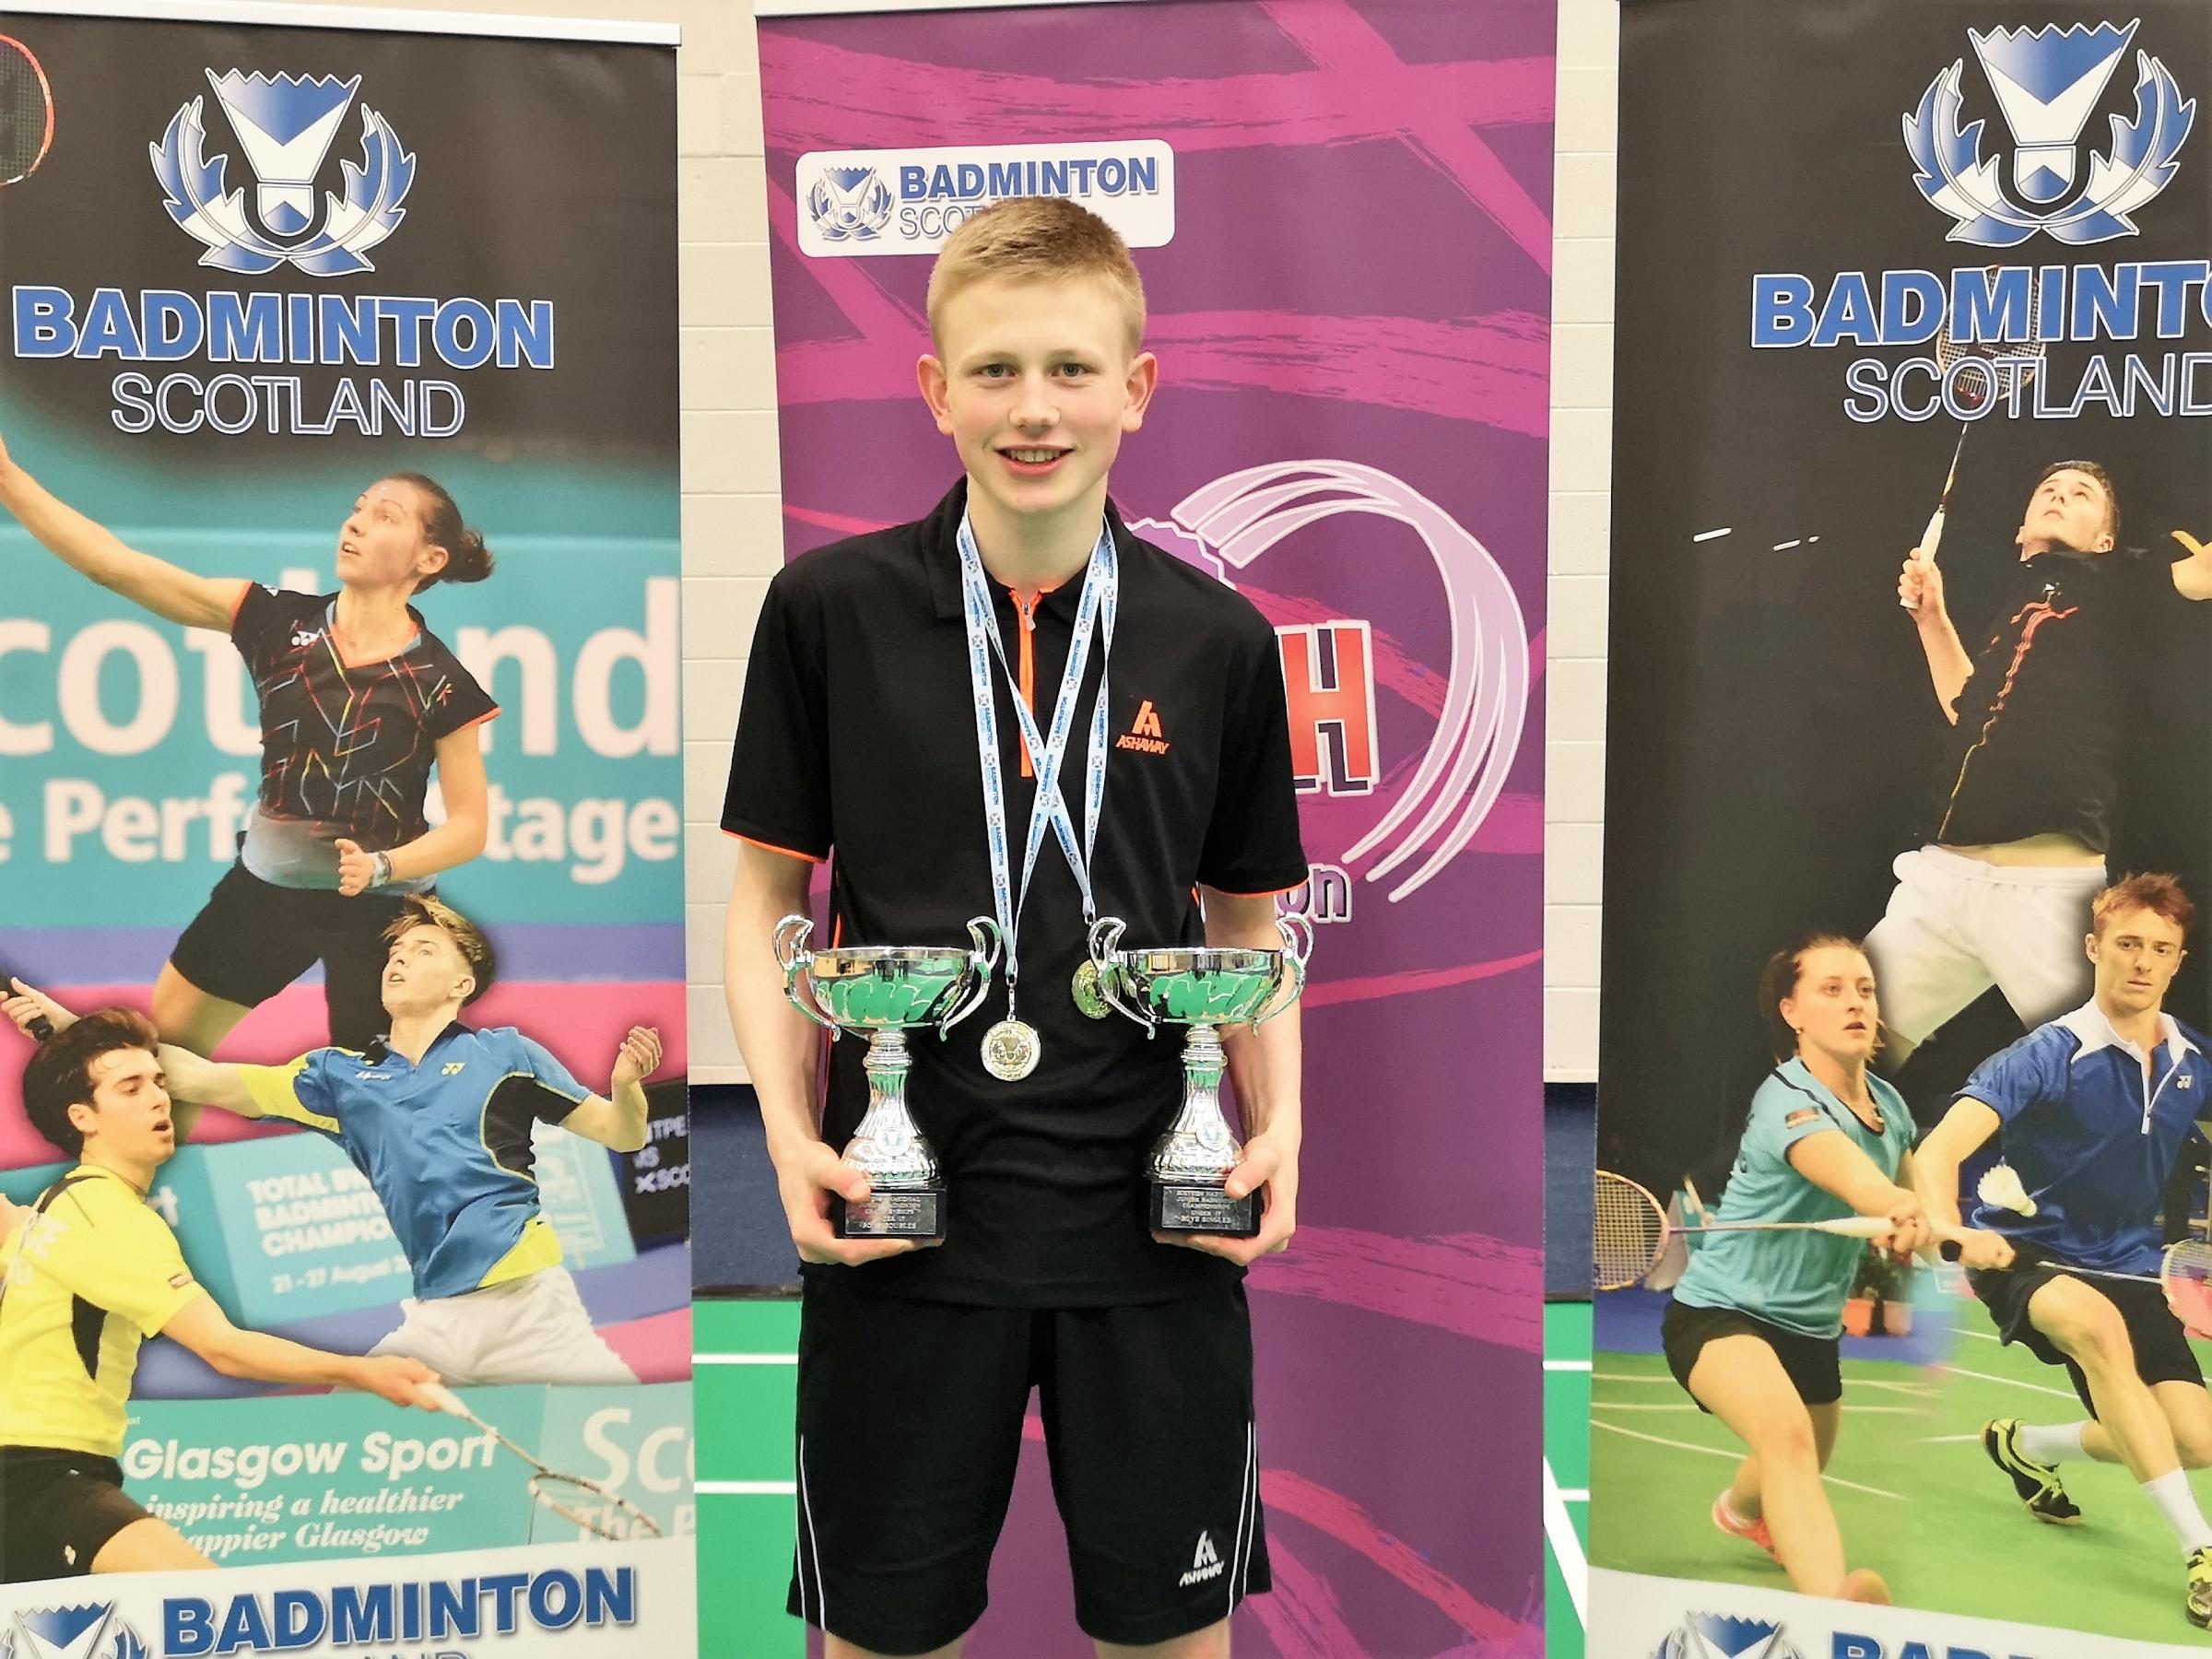 Euan Campbell was celebrating two national badminton titles